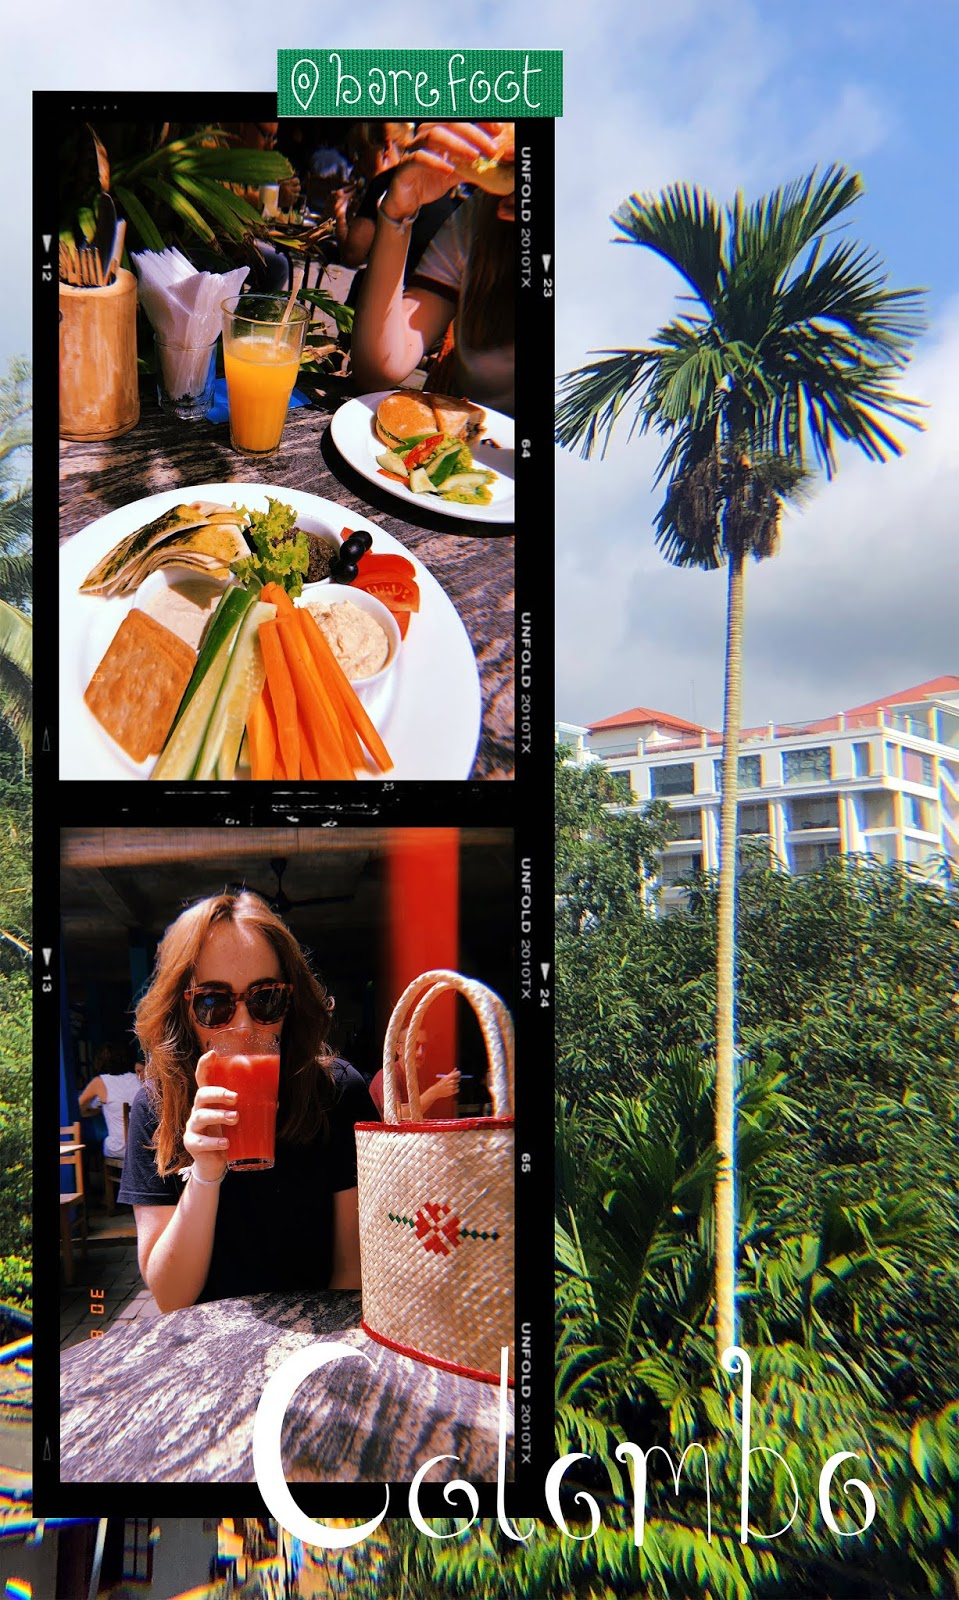 photos of food and drink from barefoot cafe Colombo against palm tree photo background